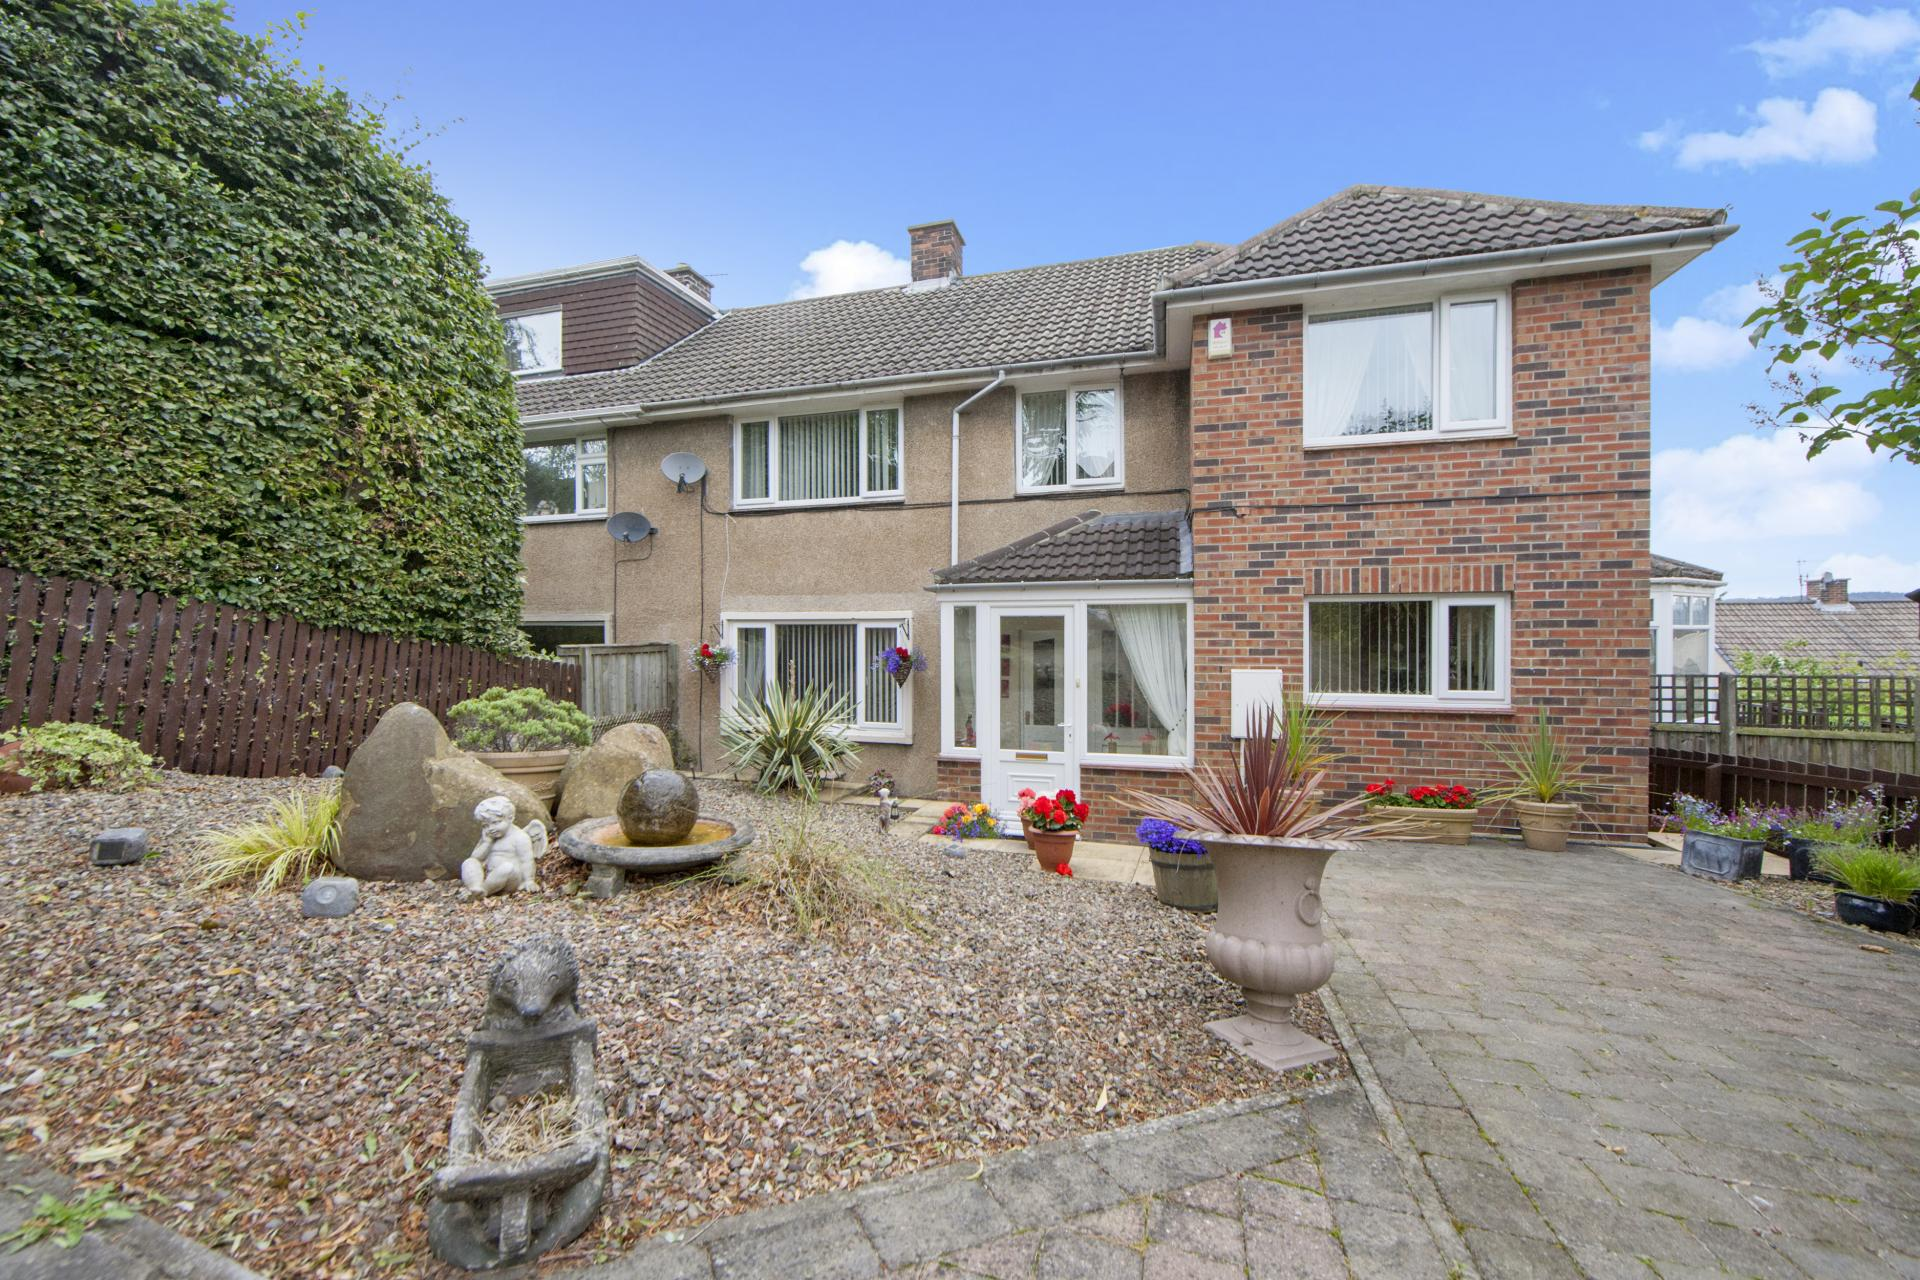 4 Bedrooms Semi Detached House for sale in Valebrook, Hexham